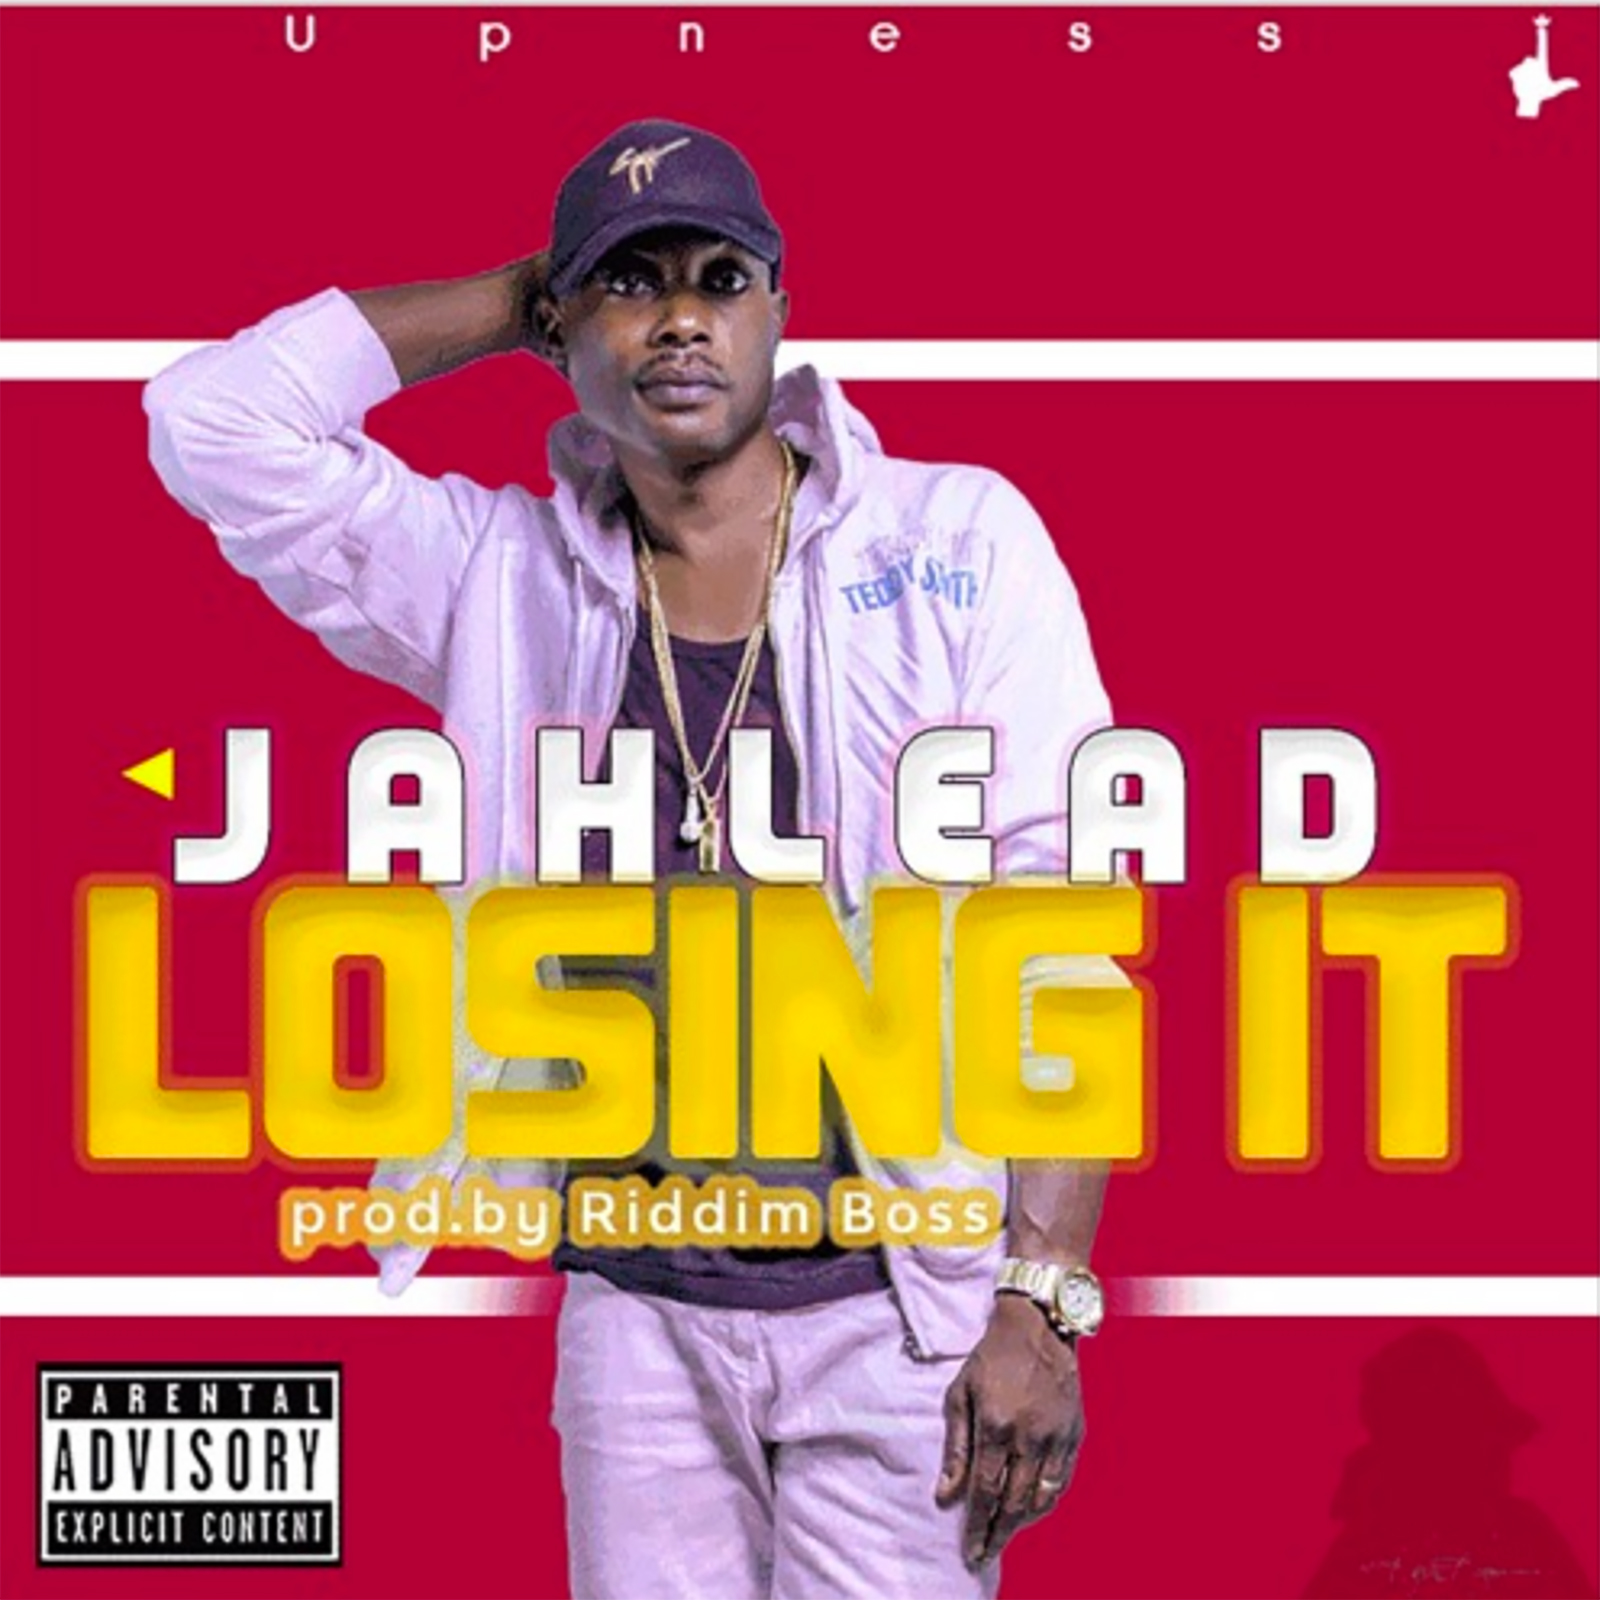 Loosing It (Party Play Riddim) by Jah Lead